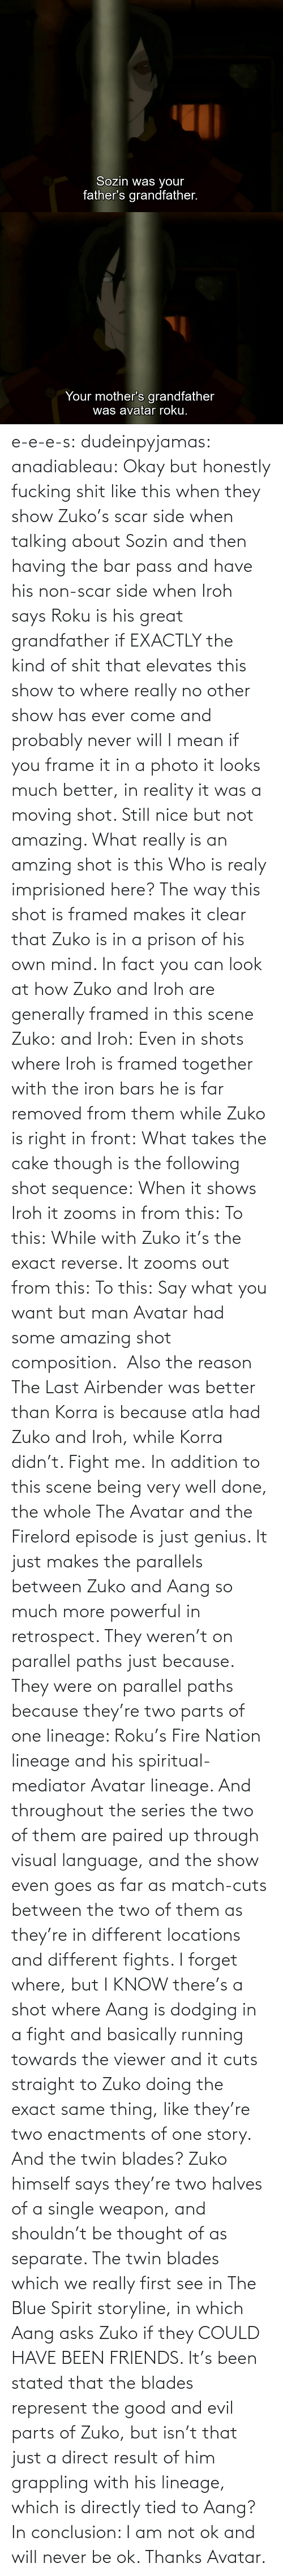 Mean: e-e-e-s: dudeinpyjamas:   anadiableau: Okay but honestly fucking shit like this when they show Zuko's scar side when talking about Sozin and then having the bar pass and have his non-scar side when Iroh says Roku is his great grandfather if EXACTLY the kind of shit that elevates this show to where really no other show has ever come and probably never will I mean if you frame it in a photo it looks much better, in reality it was a moving shot. Still nice but not amazing. What really is an amzing shot is this Who is realy imprisioned here? The way this shot is framed makes it clear that Zuko is in a prison of his own mind. In fact you can look at how Zuko and Iroh are generally framed in this scene Zuko: and Iroh: Even in shots where Iroh is framed together with the iron bars he is far removed from them while Zuko is right in front:  What takes the cake though is the following shot sequence: When it shows Iroh it zooms in from this: To this: While with Zuko it's the exact reverse. It zooms out from this: To this: Say what you want but man Avatar had some amazing shot composition.   Also the reason The Last Airbender was better than Korra is because atla had Zuko and Iroh, while Korra didn't. Fight me.    In addition to this scene being very well done, the whole The Avatar and the Firelord episode is just genius.  It just makes the parallels between Zuko and Aang so much more powerful in retrospect.  They weren't on parallel paths just because.  They were on parallel paths because they're two parts of one lineage: Roku's Fire Nation lineage and his spiritual-mediator Avatar lineage.  And throughout the series the two of them are paired up through visual language, and the show even goes as far as match-cuts between the two of them as they're in different locations and different fights.  I forget where, but I KNOW there's a shot where Aang is dodging in a fight and basically running towards the viewer and it cuts straight to Zuko doing the exact same thing, like they're two enactments of one story.   And the twin blades?  Zuko himself says they're two halves of a single weapon, and shouldn't be thought of as separate.  The twin blades which we really first see in The Blue Spirit storyline, in which Aang asks Zuko if they COULD HAVE BEEN FRIENDS.  It's been stated that the blades represent the good and evil parts of Zuko, but isn't that just a direct result of him grappling with his lineage, which is directly tied to Aang? In conclusion: I am not ok and will never be ok.  Thanks Avatar.